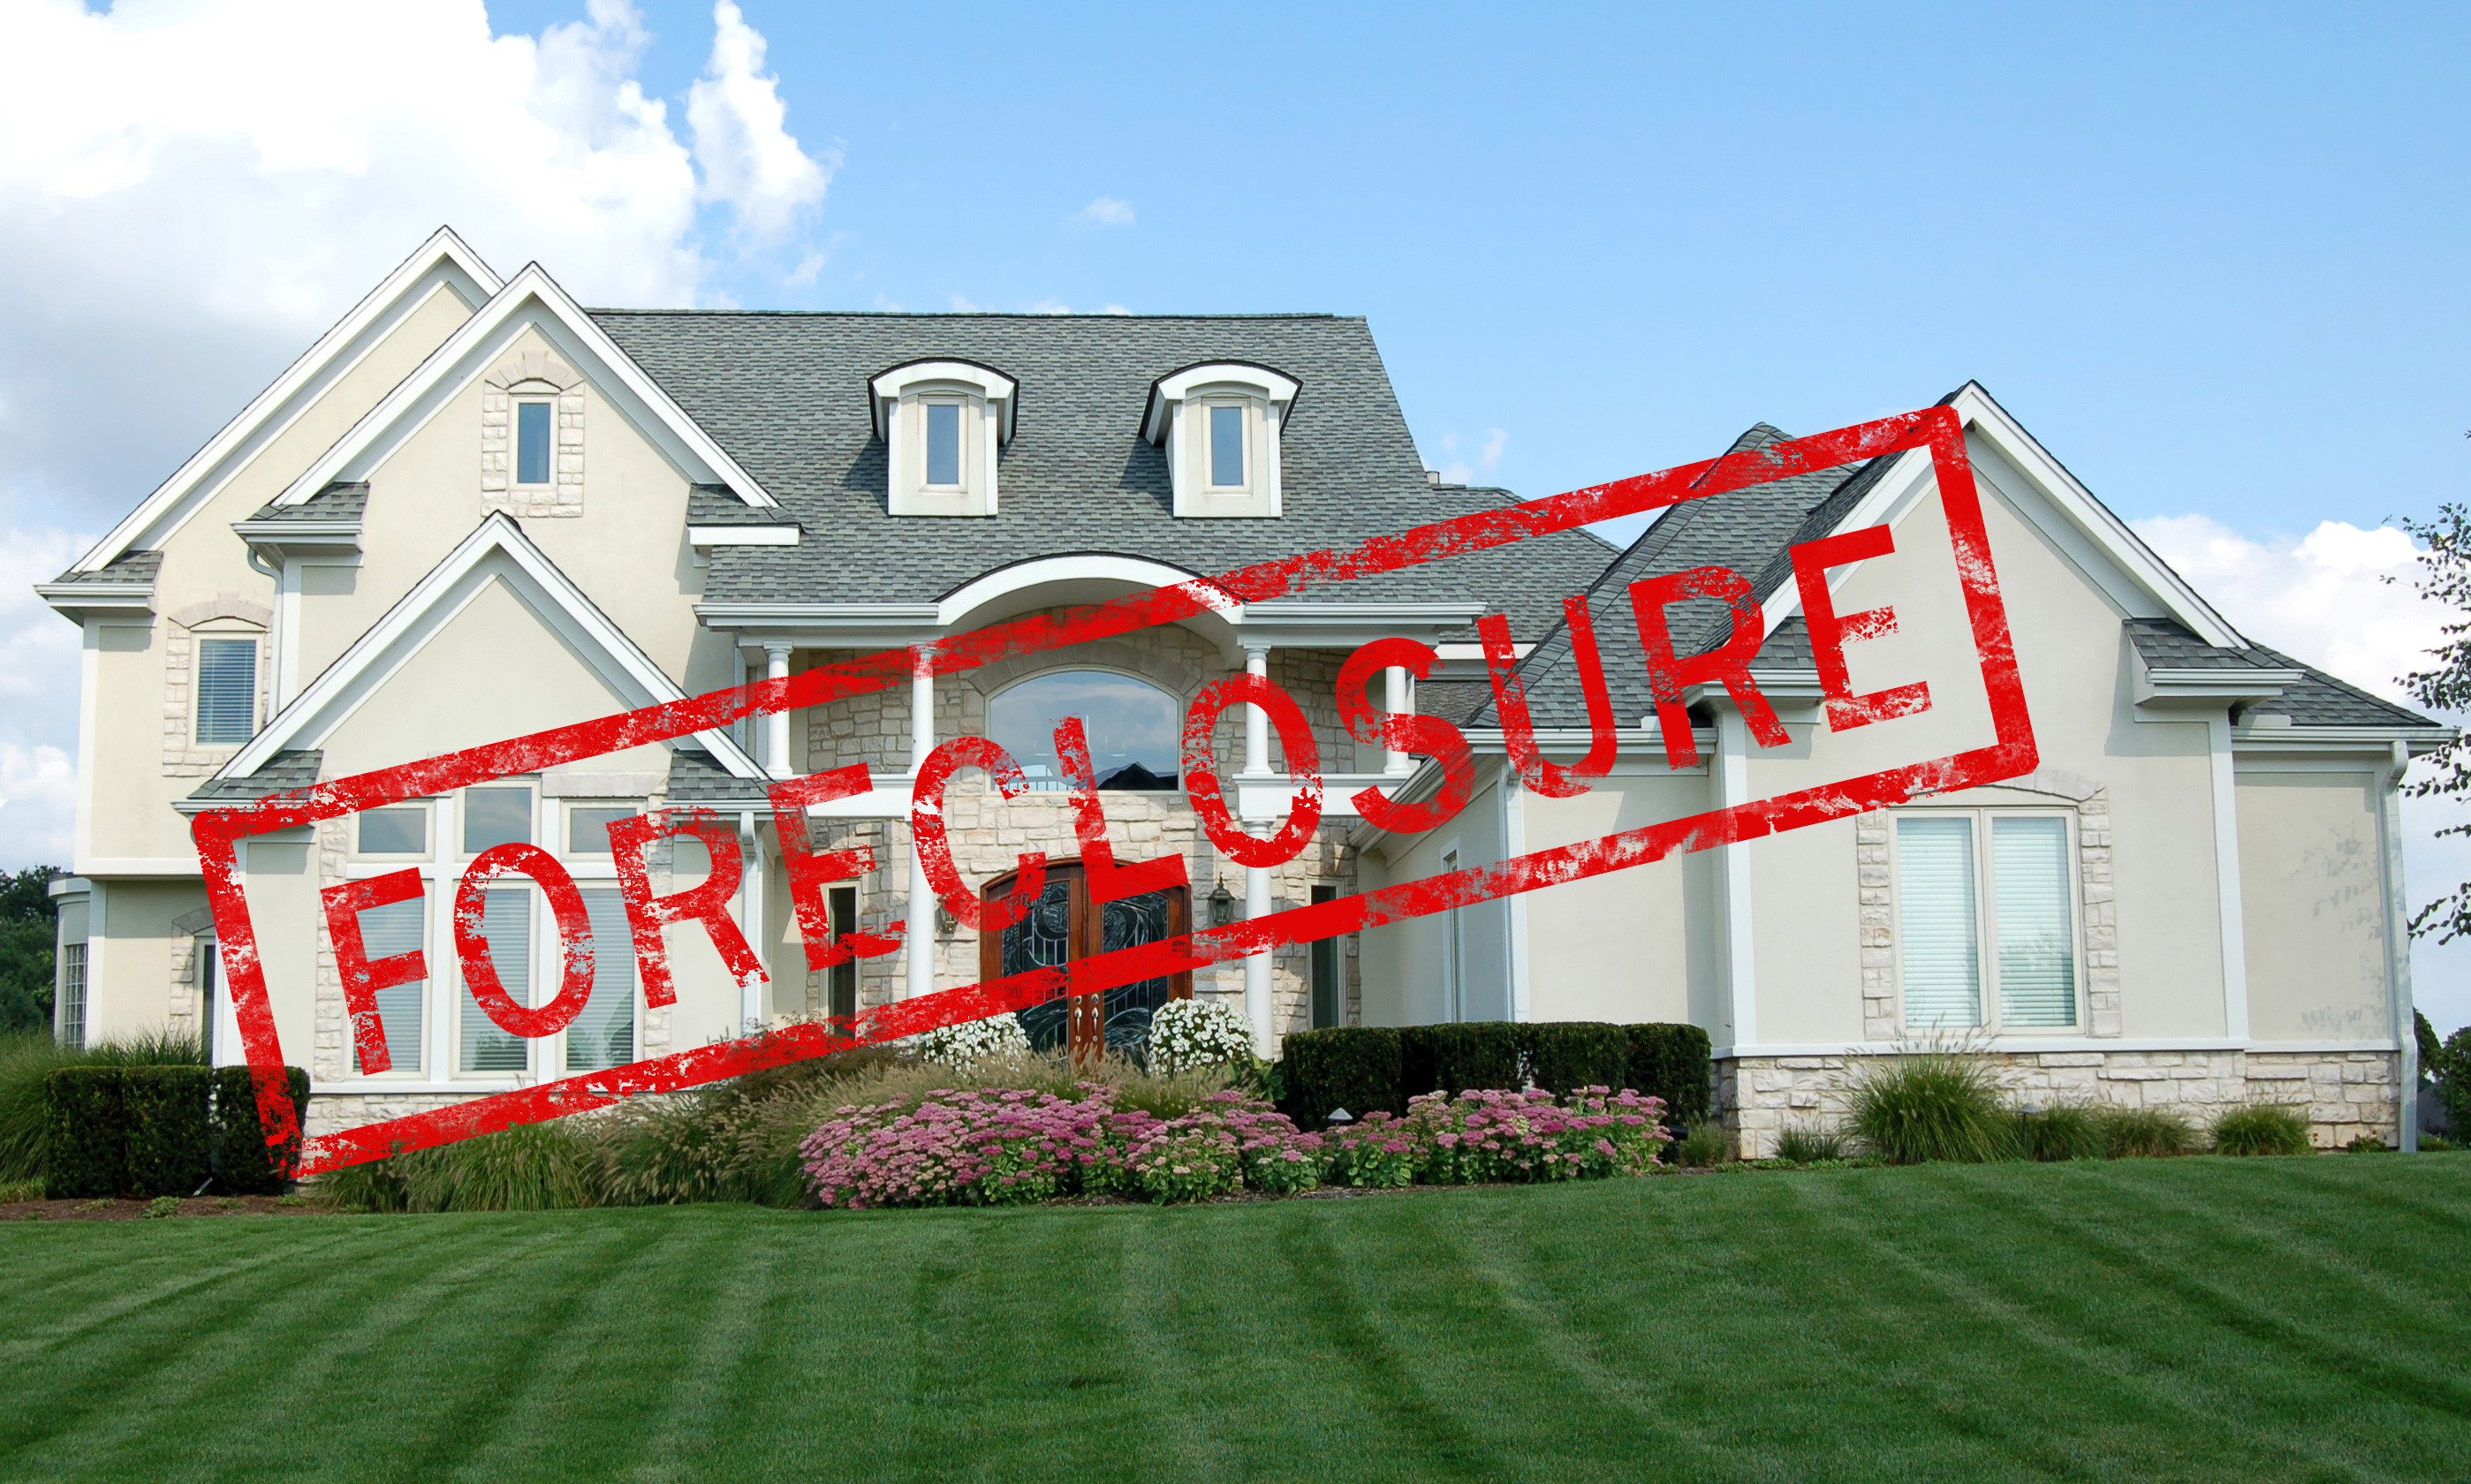 Call Peabody Allied Appraisers to discuss valuations for Essex foreclosures